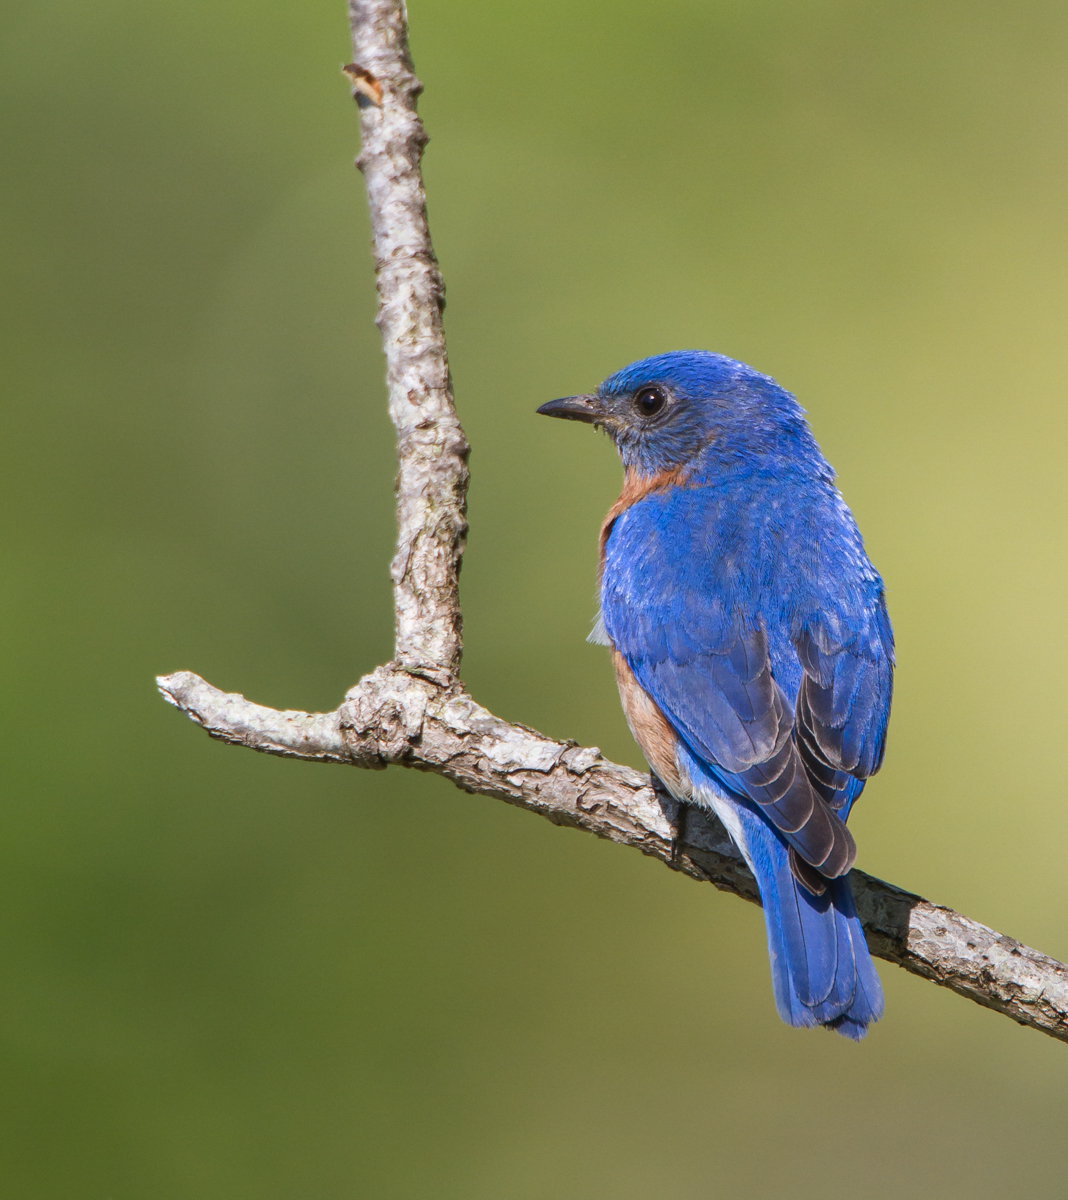 Blue bird - photo#41